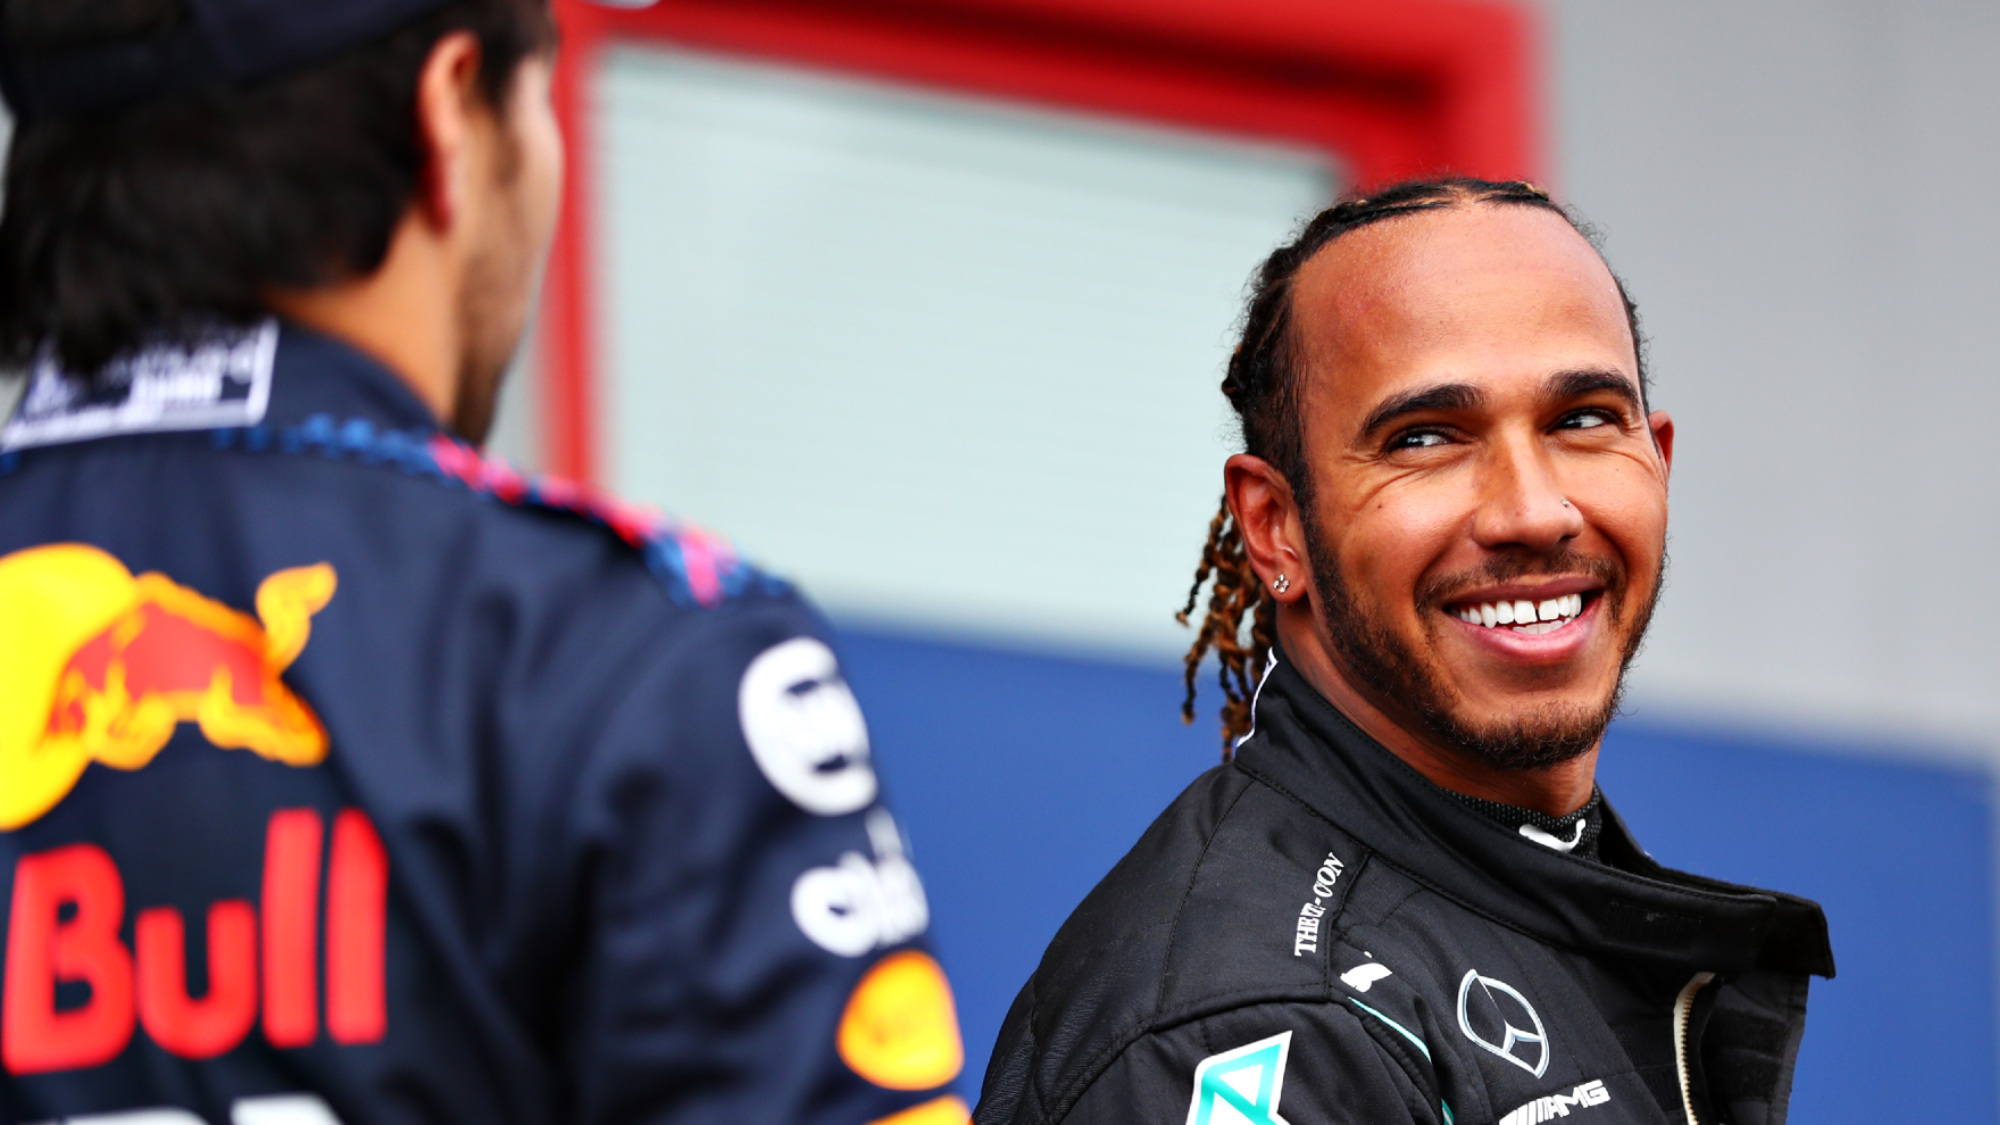 2021 Emilia Romagna Grand Prix qualifying report: Hamilton stuns Red Bull setting up intriguing Imola race